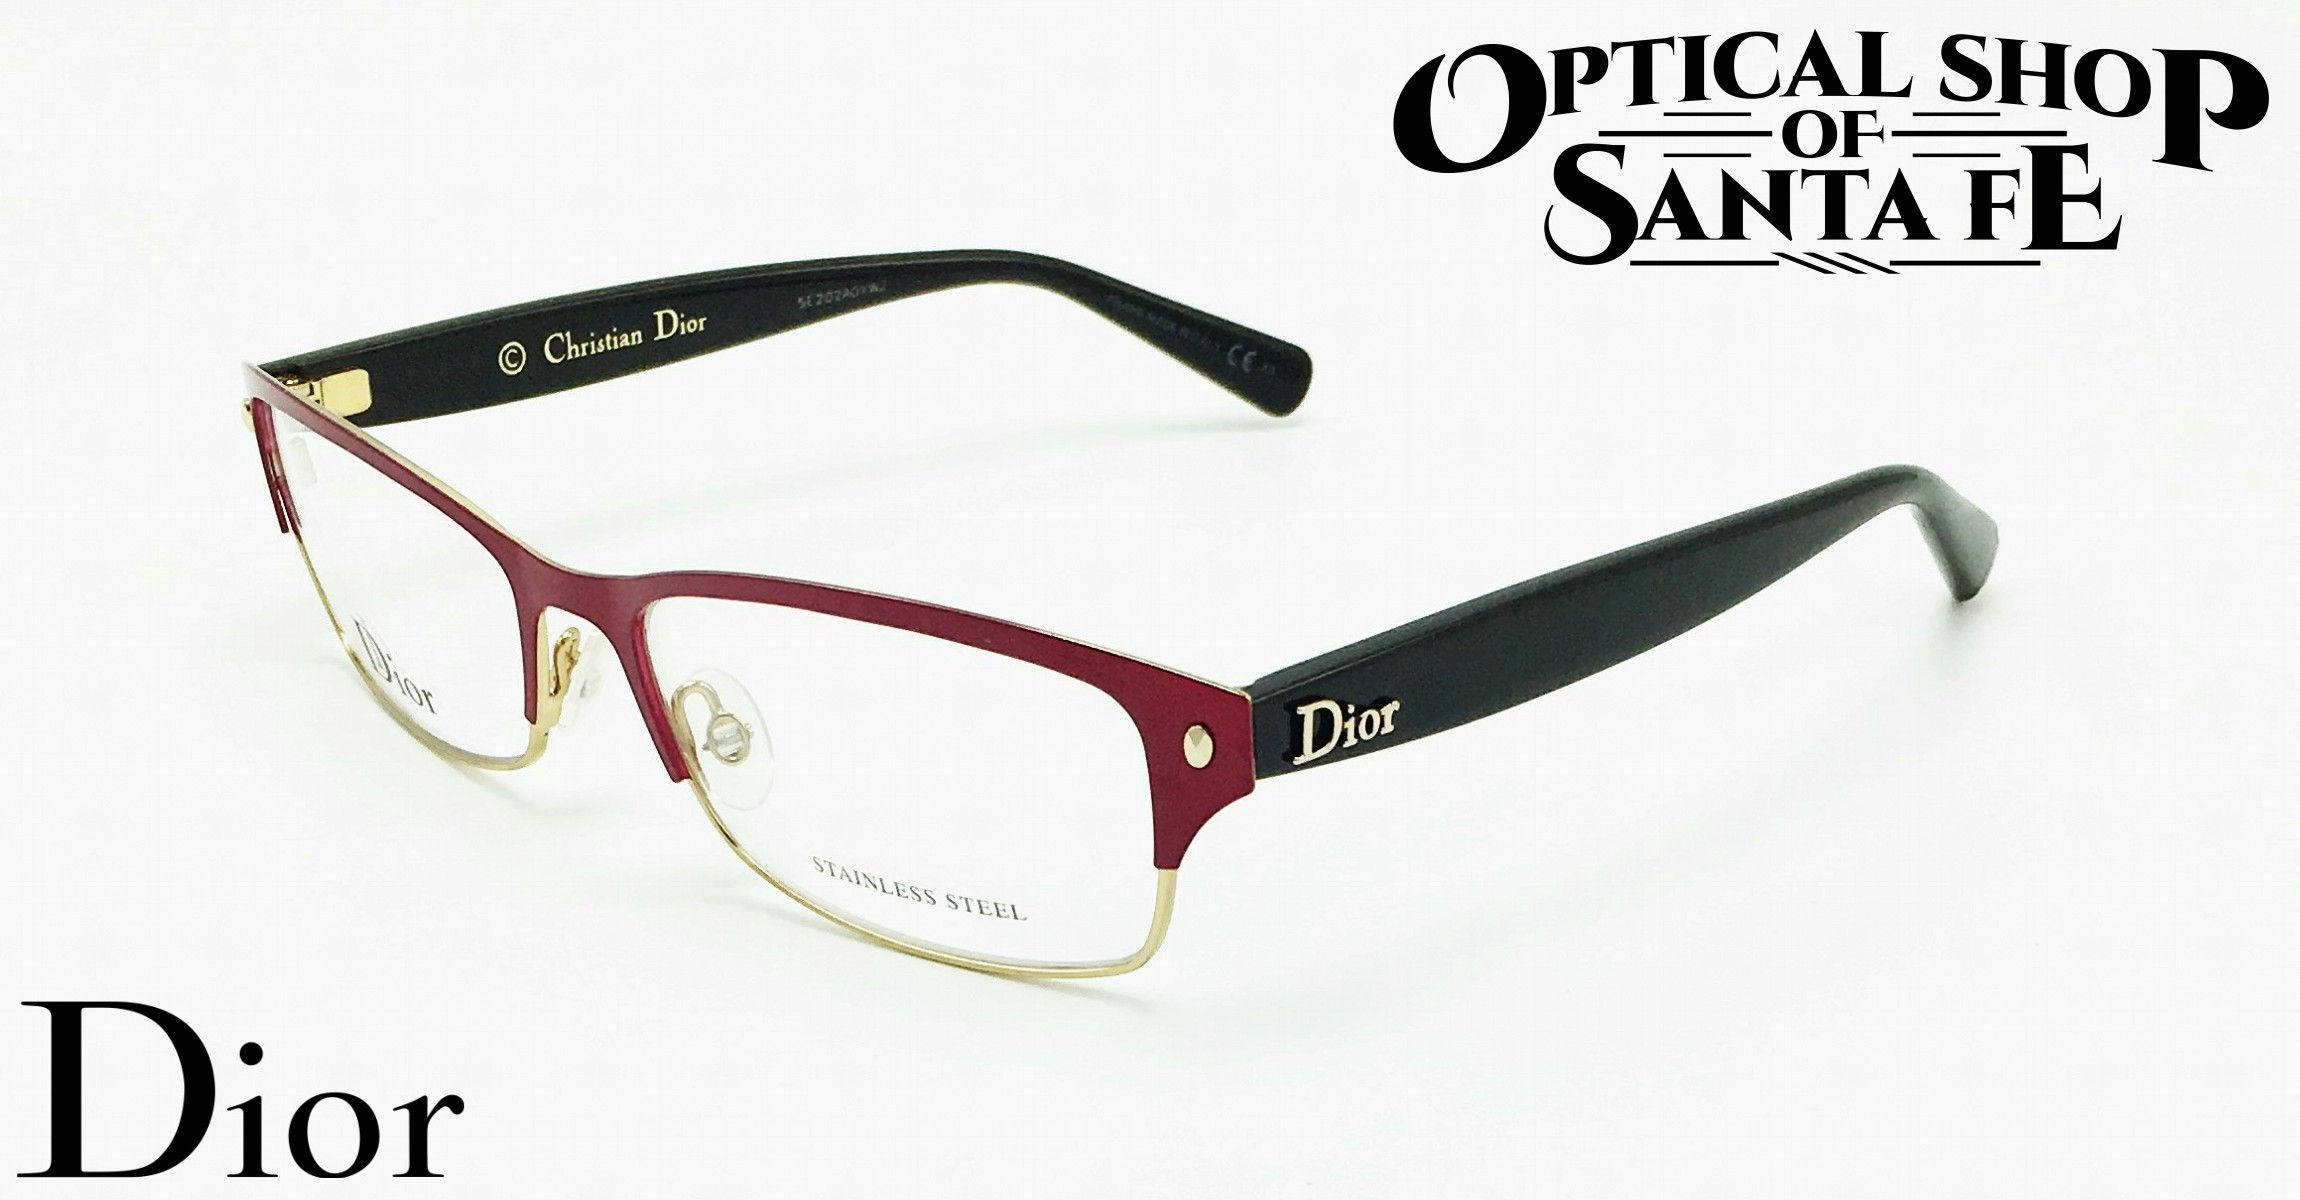 Dior Optical Frame | Dior - Optical | Pinterest